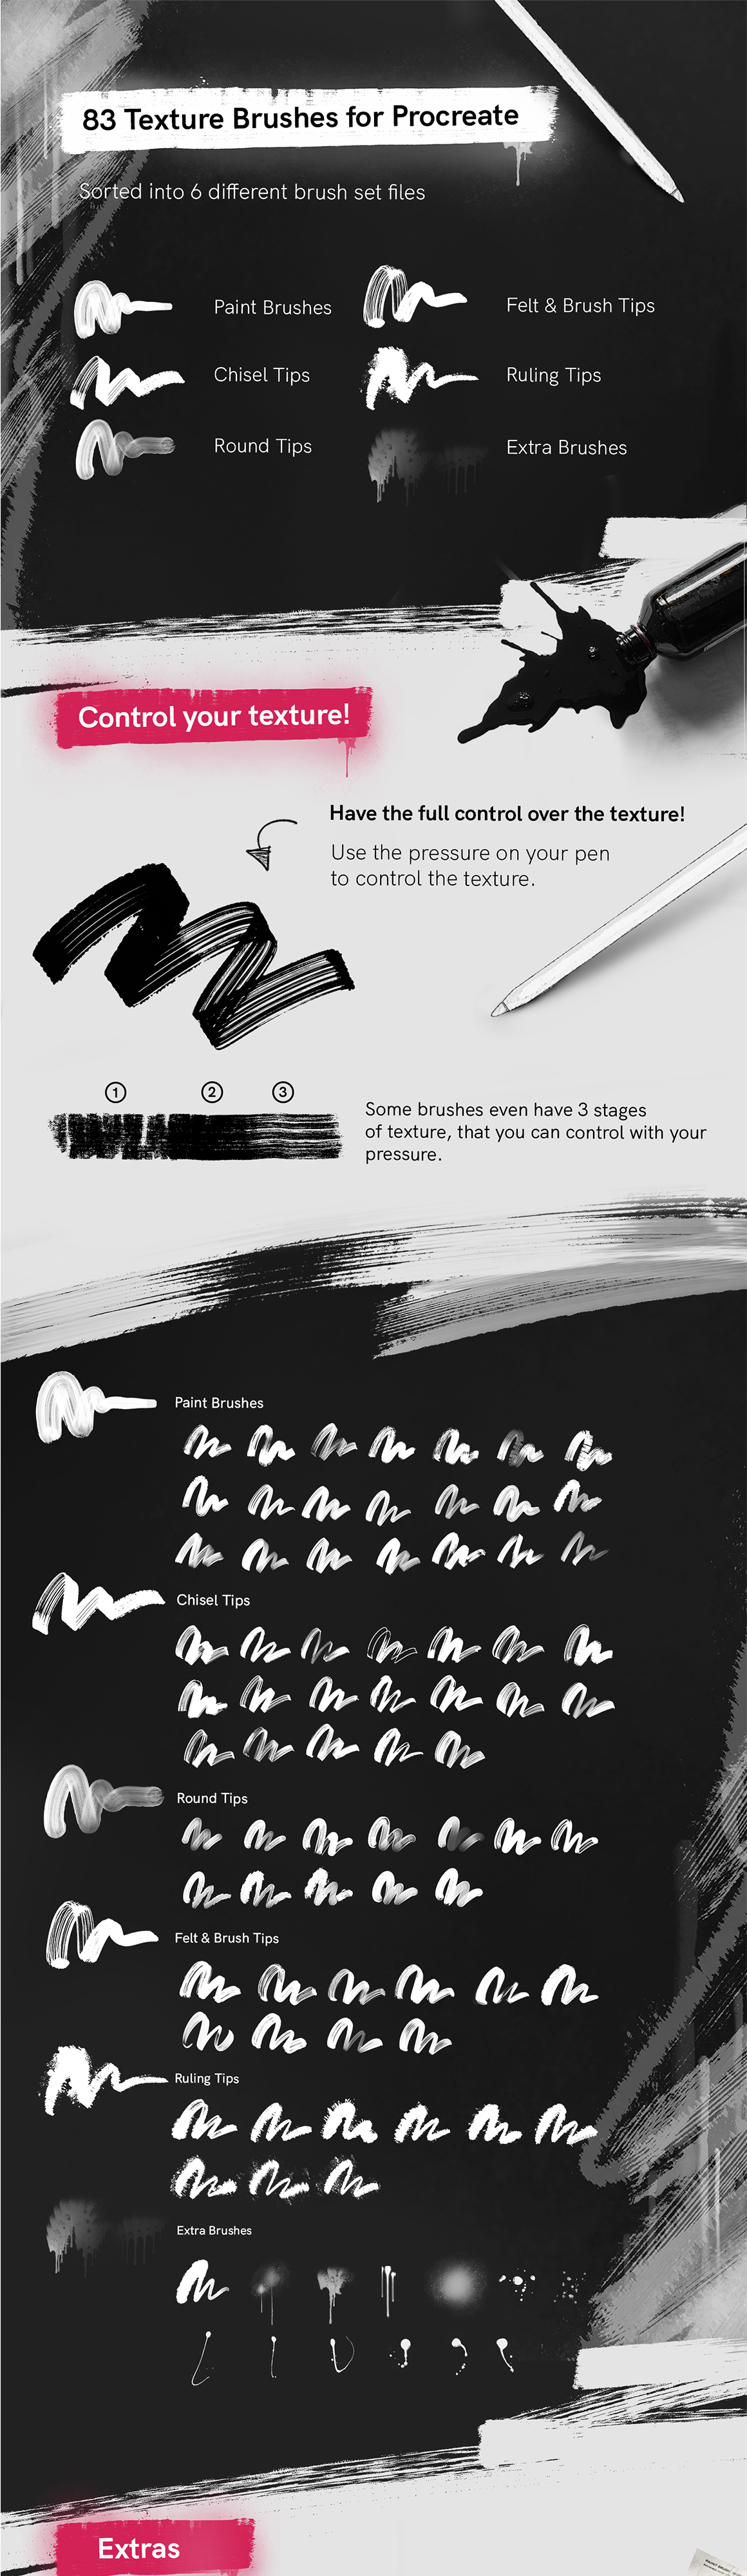 RoughPack 2 – Texture Brushes for Procreate